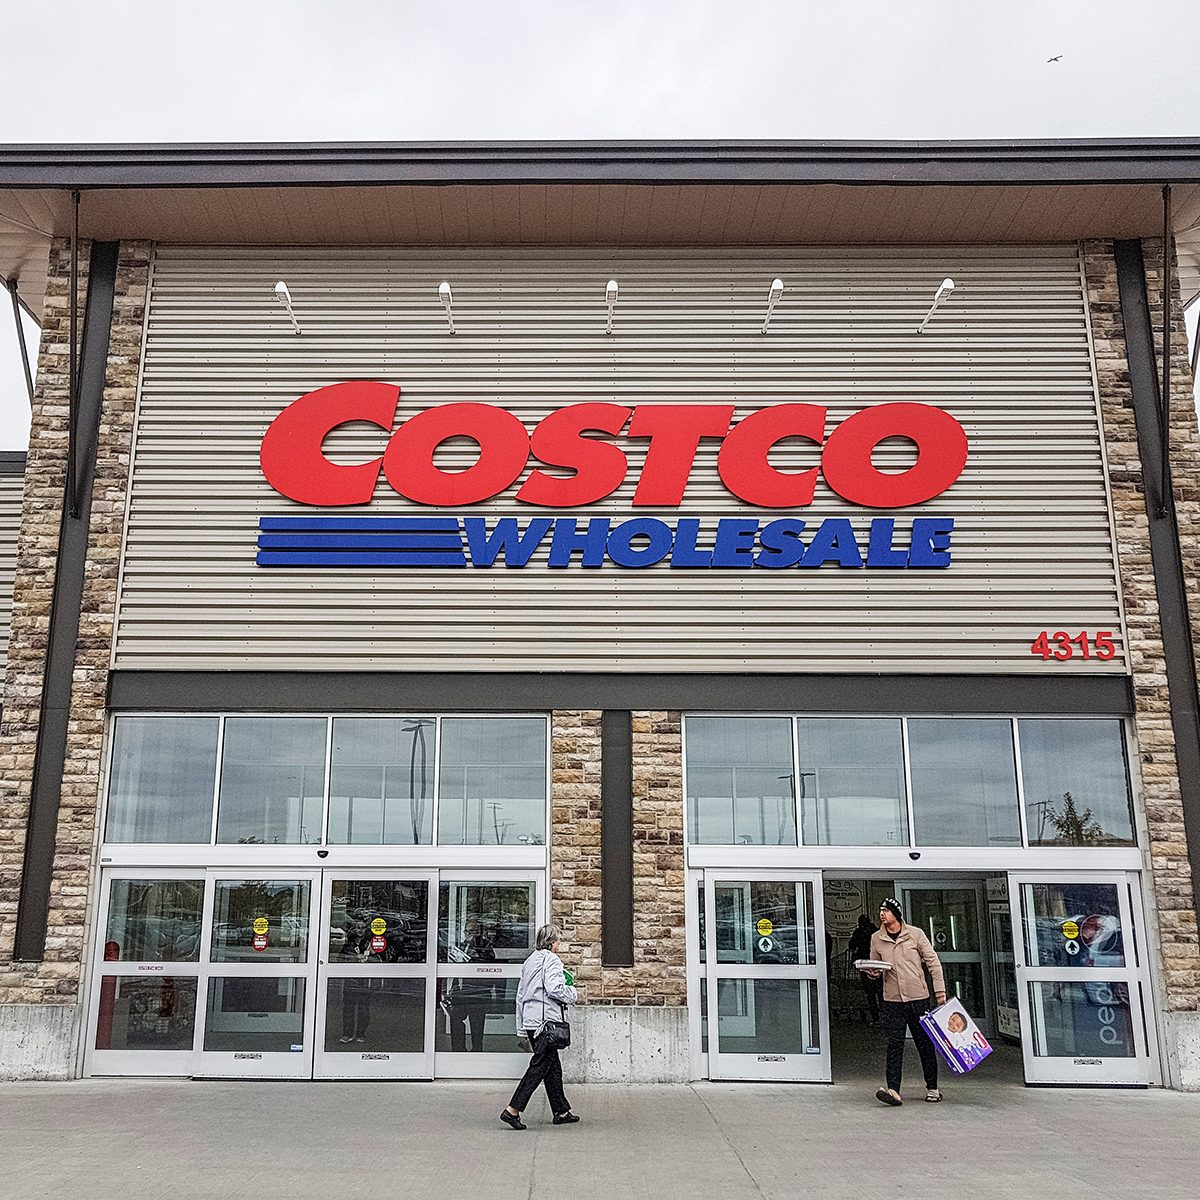 OTTAWA, CANADA - OCTOBER 7, 2018: Costco Wholesale store in Ottawa, Canada. The company operates a chain of membership warehouses, carrying merchandise at lower prices. ; Shutterstock ID 1197798139